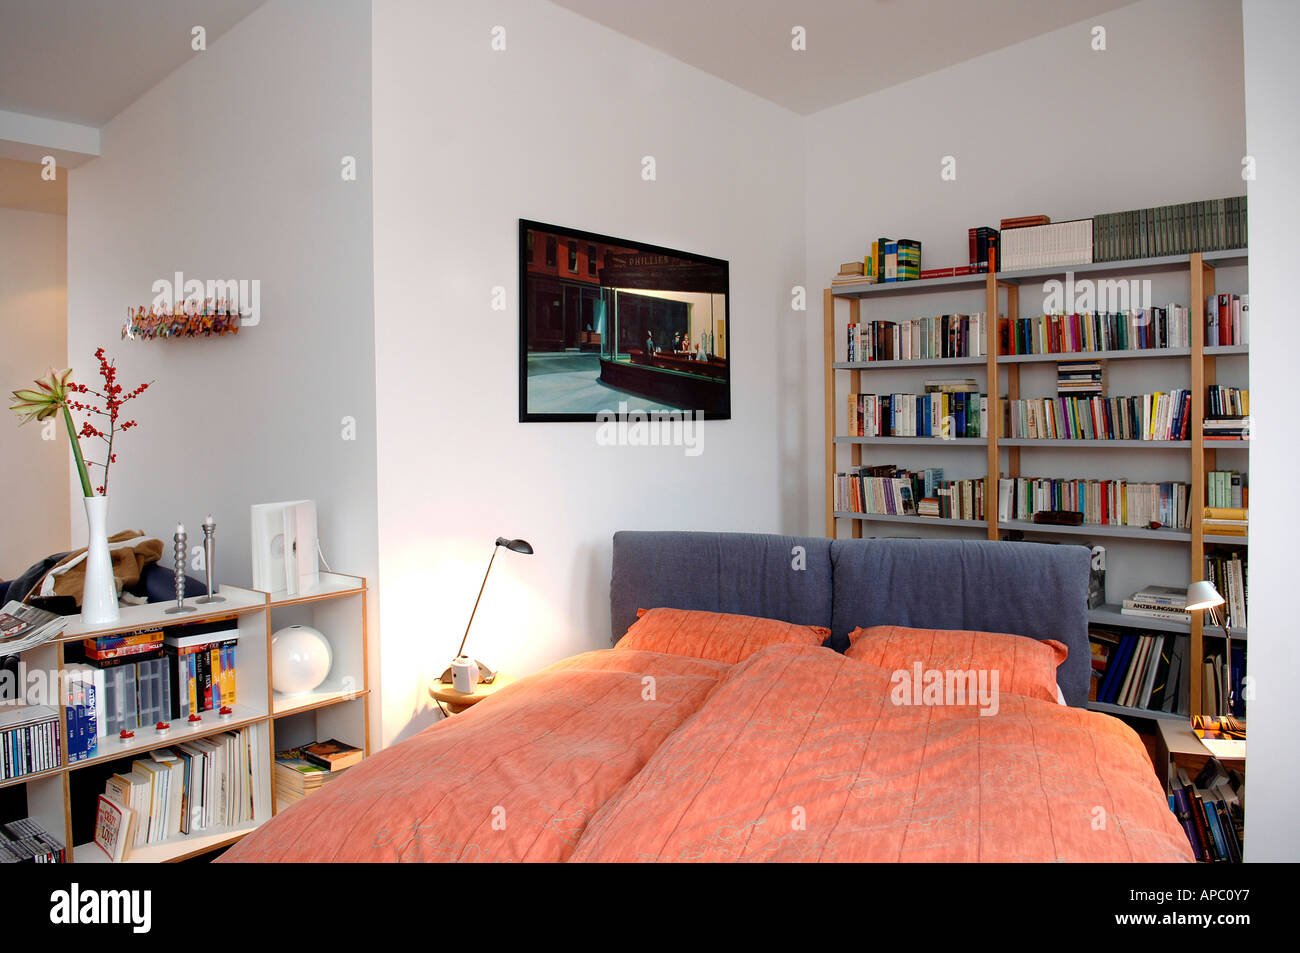 Decay developed attic dwelling in Berlin. Bedroom with books shelves and marriage bed. Stock Photo